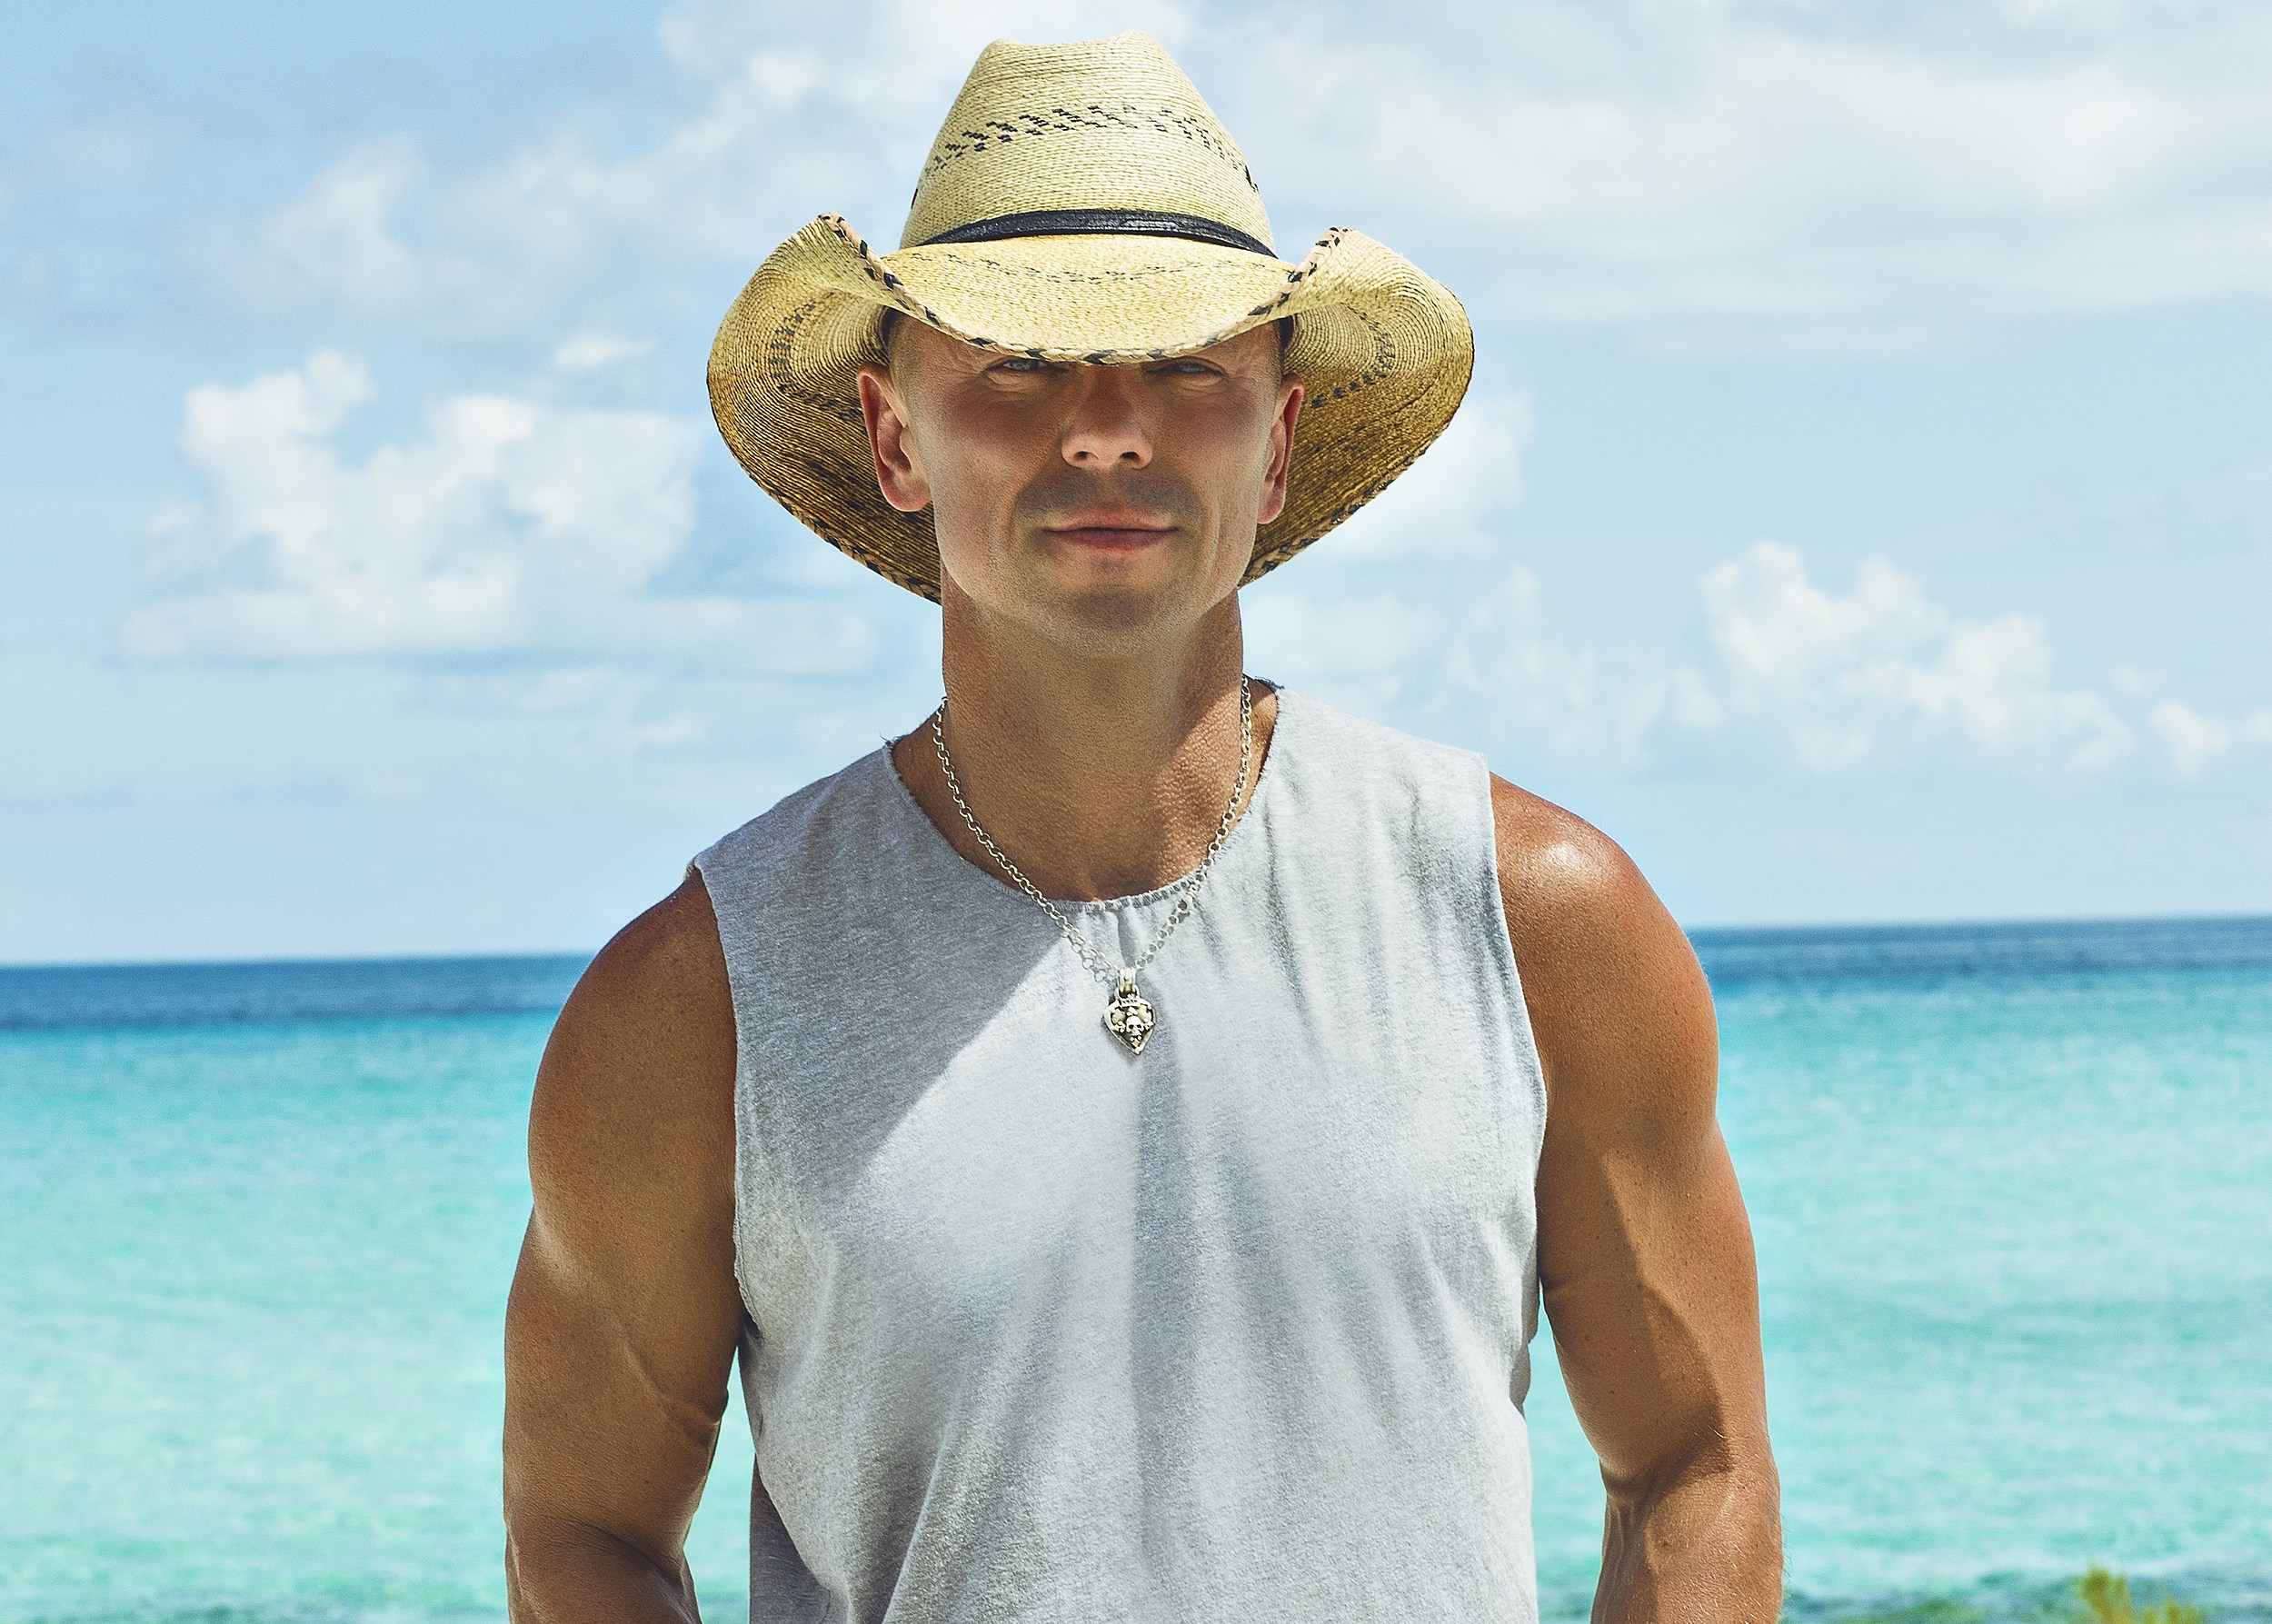 Minnesotans That Rock The 1031 Kfil App Can See Kenny Chesney